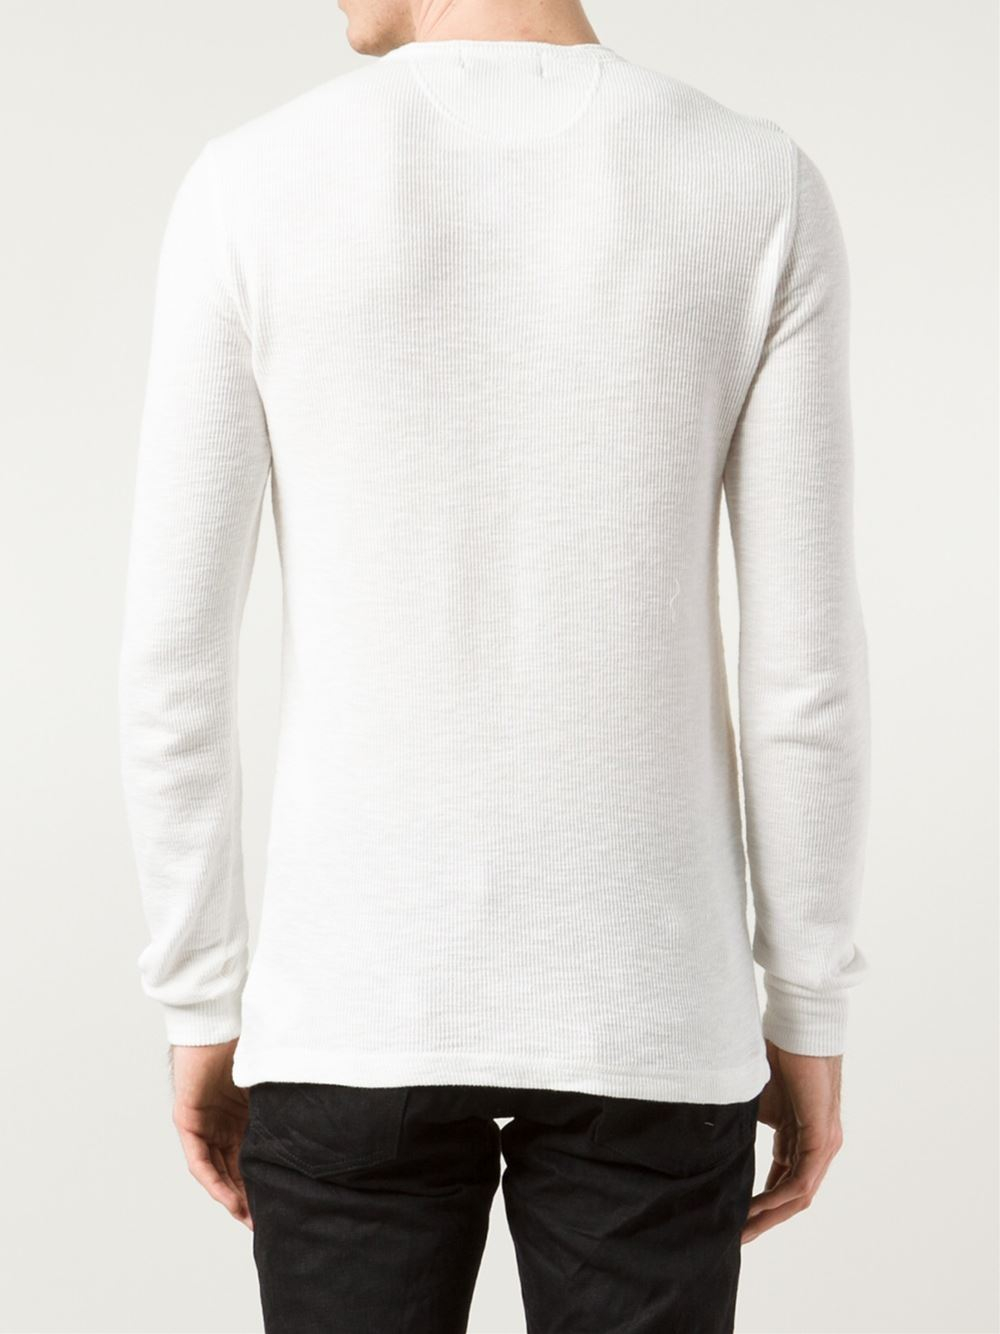 May 20, · What is a ribbed shirt? I have been browsing on online stores and see these ribbed t-shirts, and I can't seem to see the difference Can anyone please tell me what a ribbed shirt look coolmfilehj.cf: Resolved.